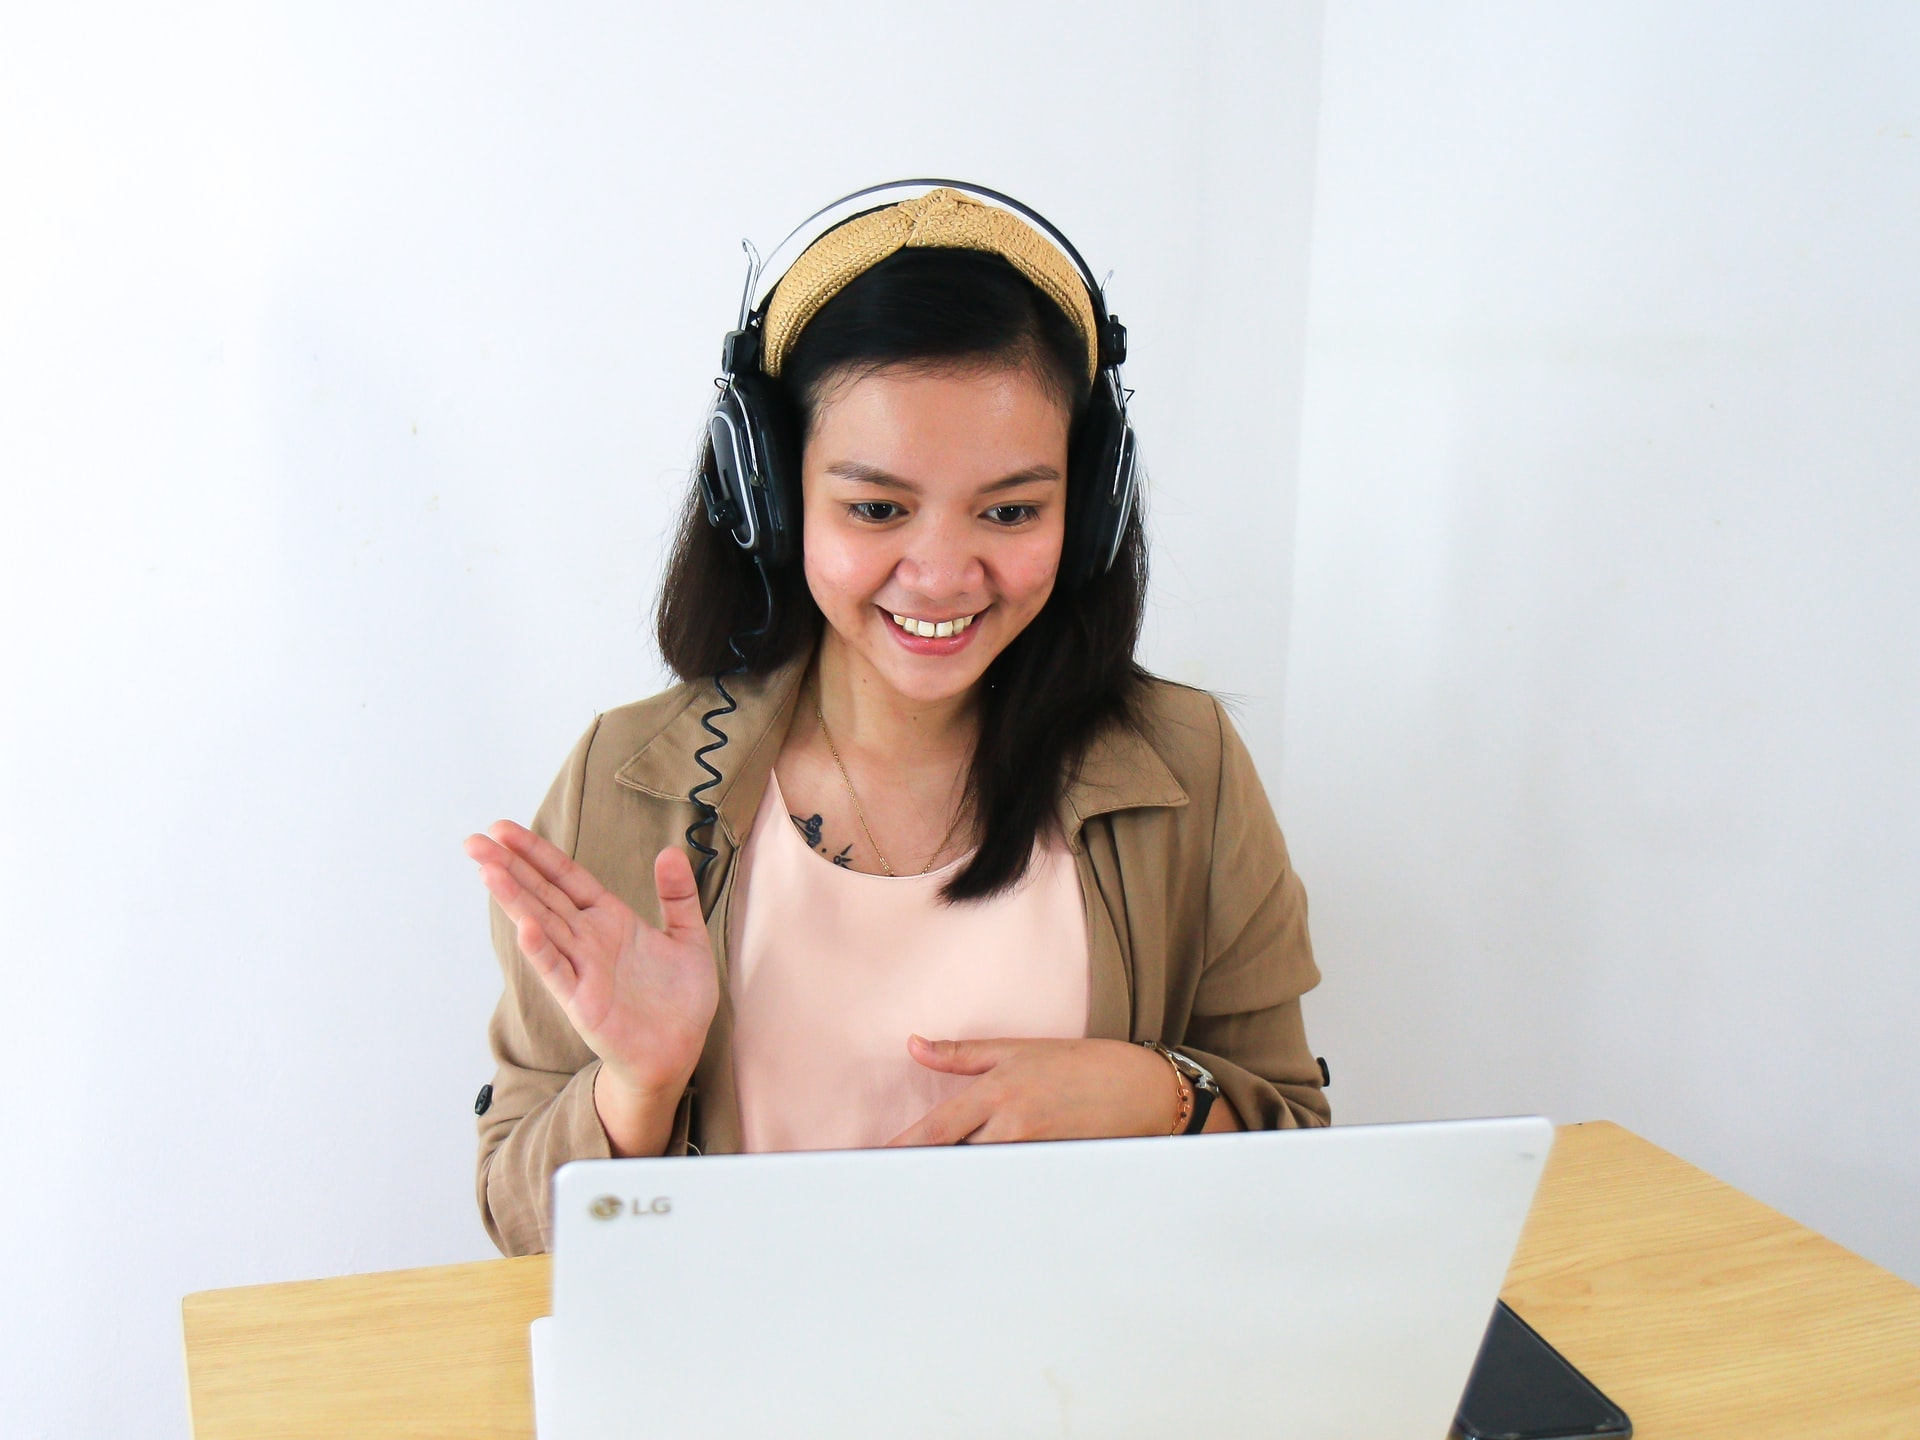 woman conducting survey using live televideo interviews